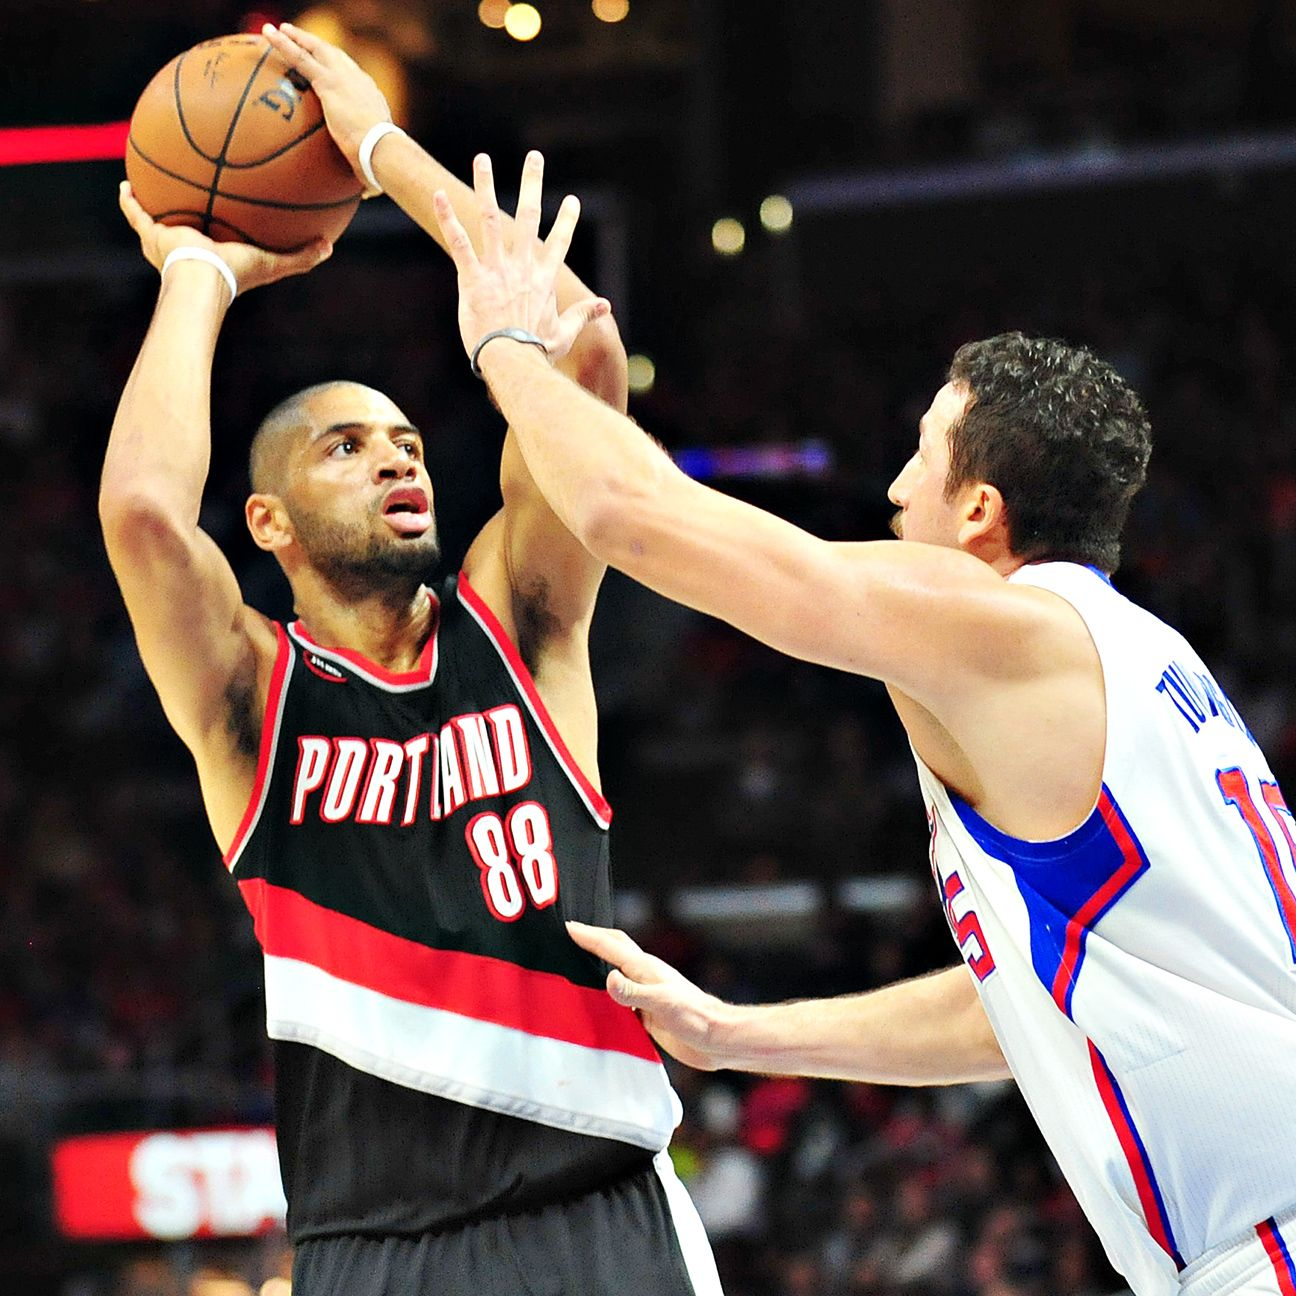 Portland Trail Blazers Agree To Trade Nic Batum To